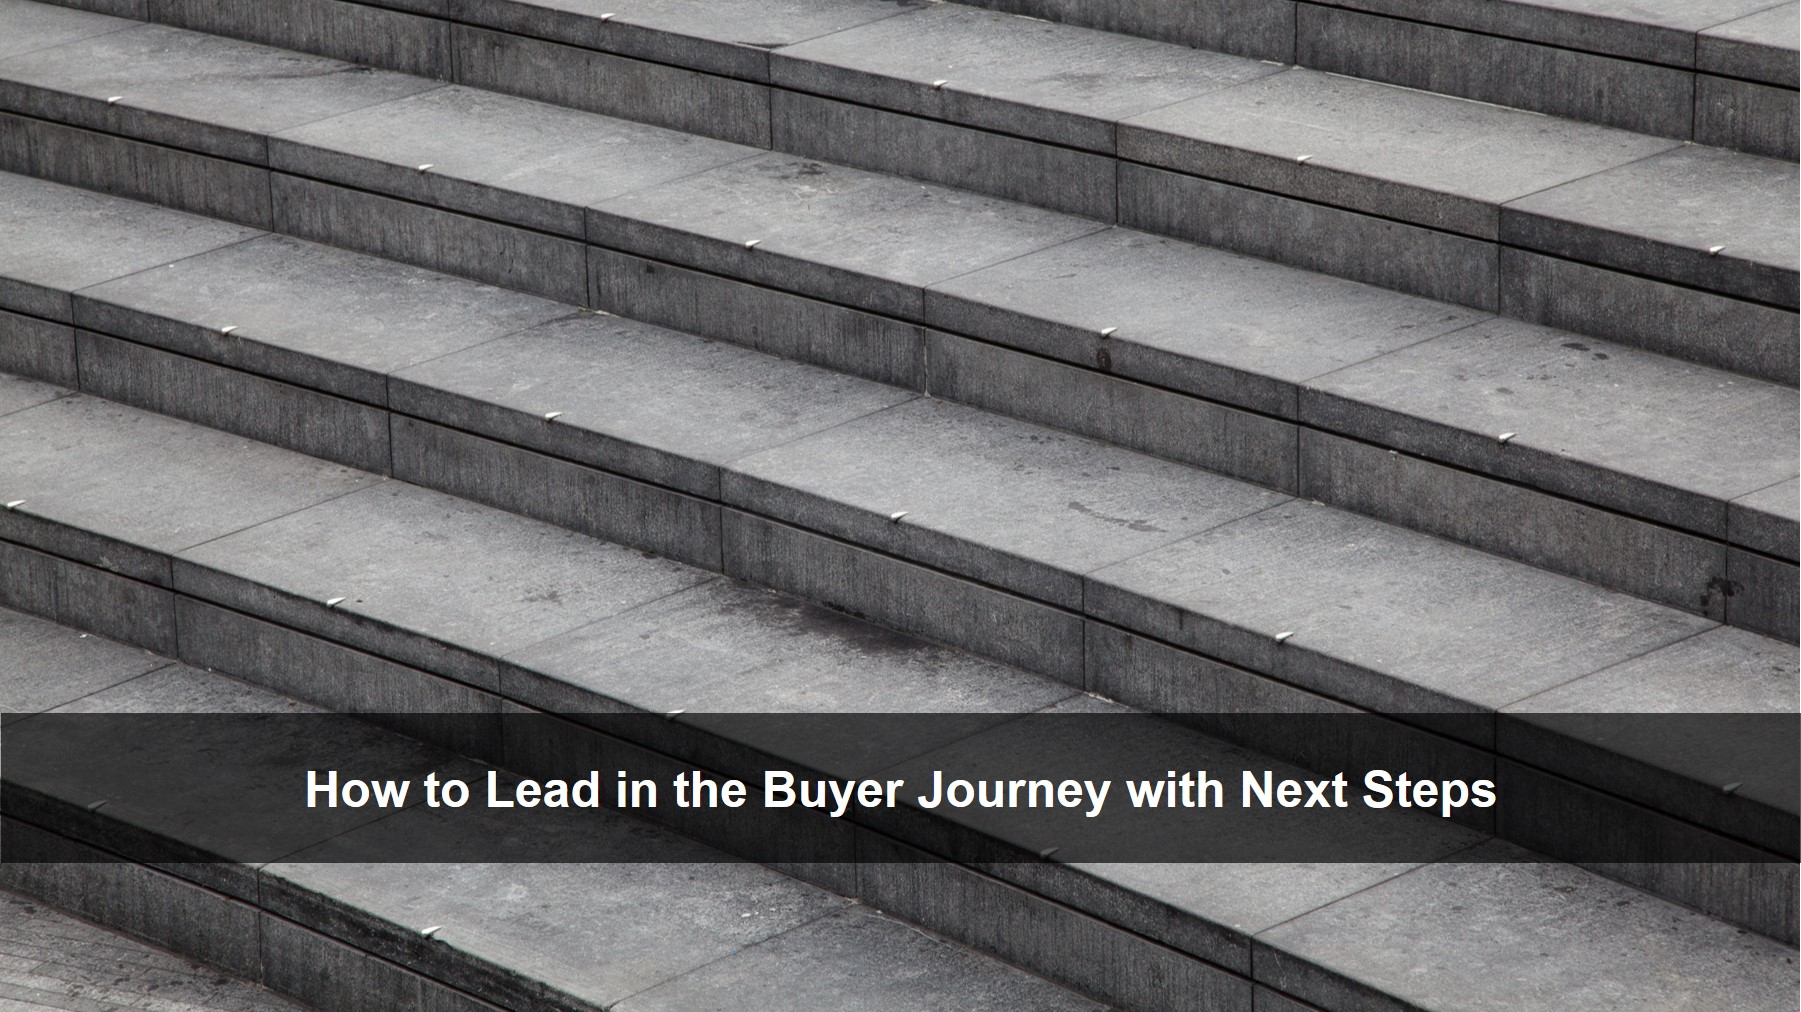 Blog 20190424 - Lead with Next Steps 16x9